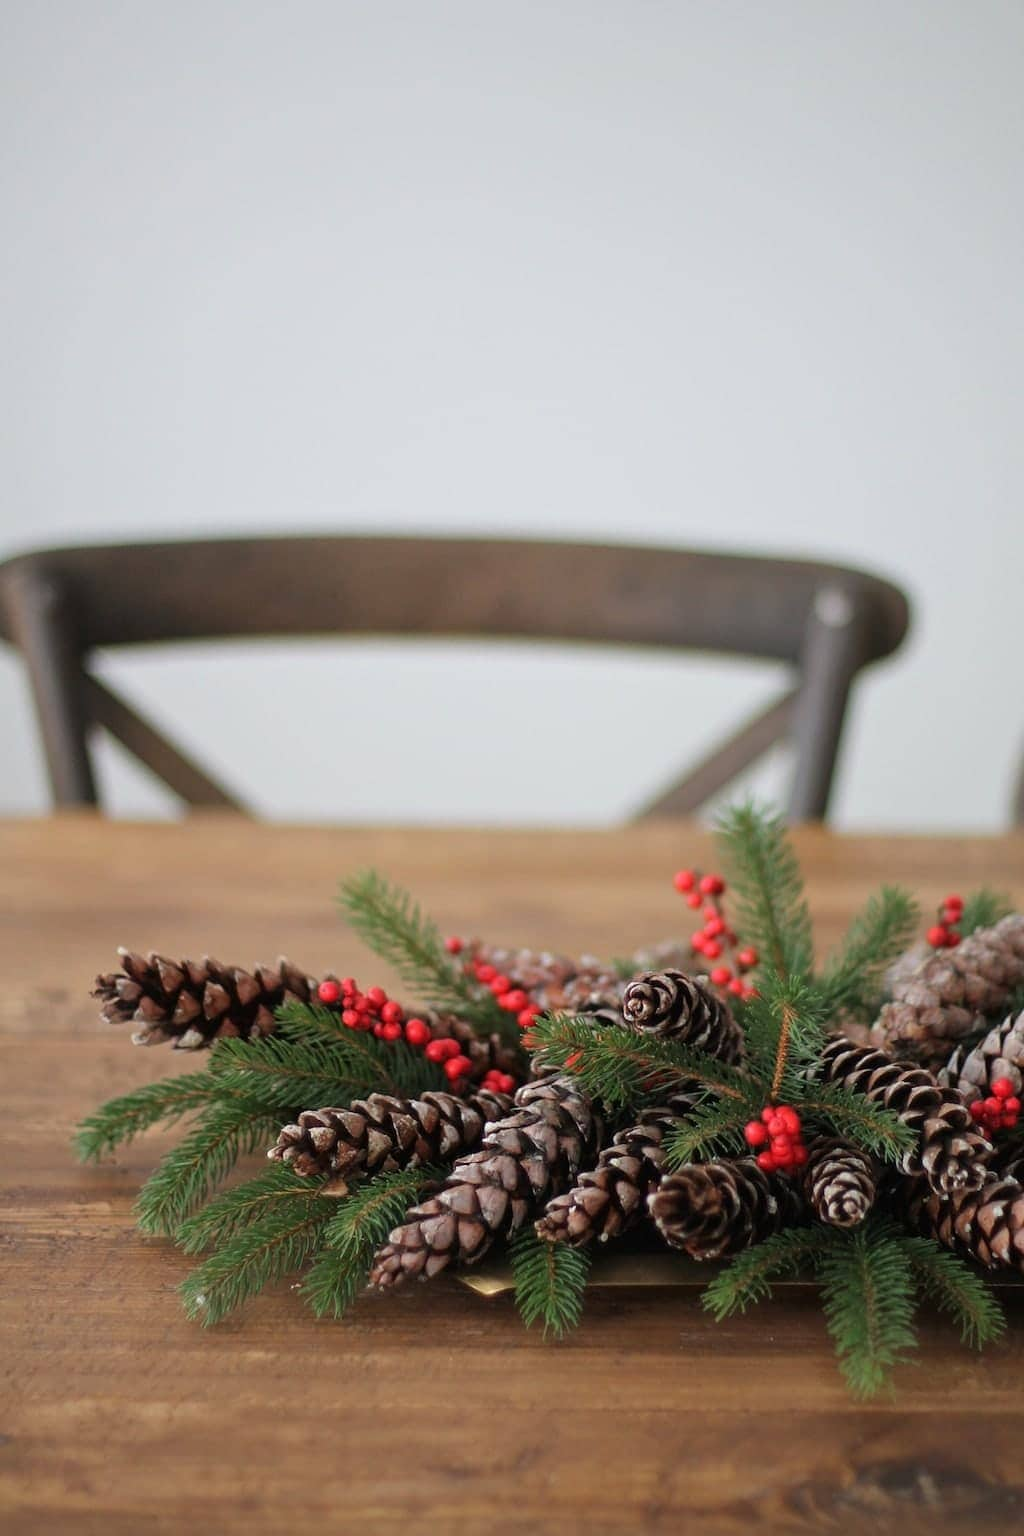 Learn how to make a pinecone & berry centerpiece for Christmas.